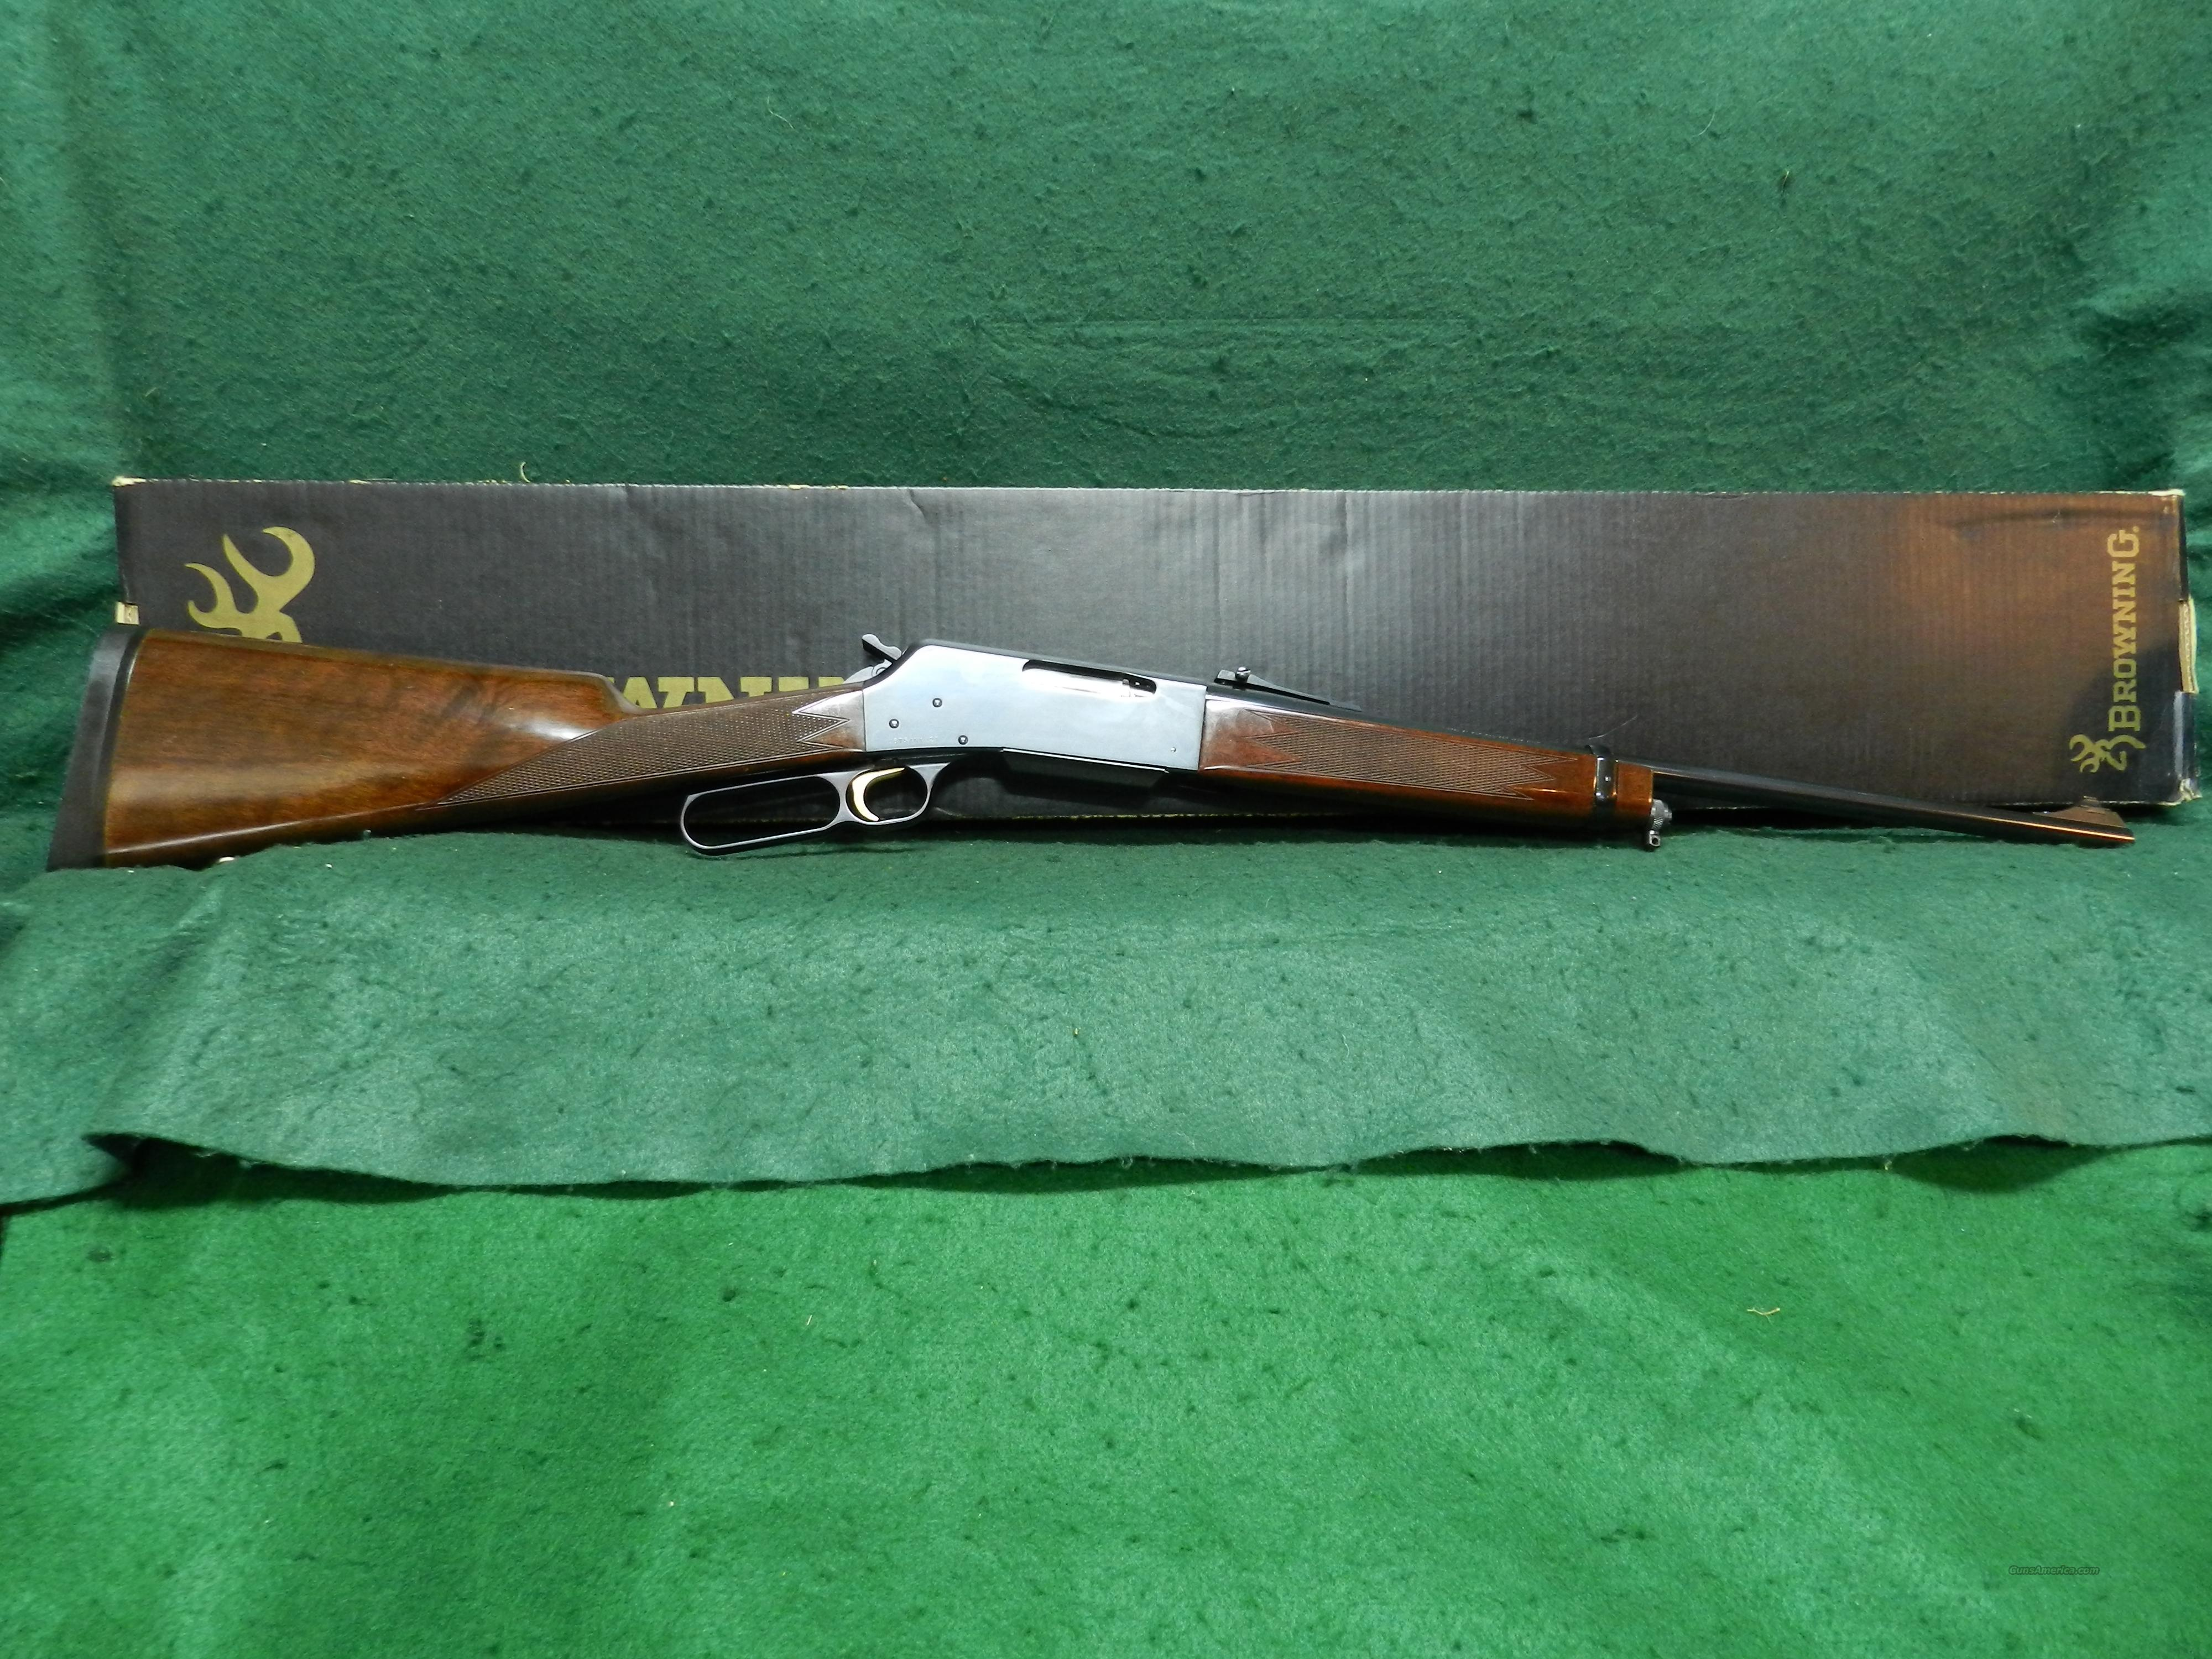 Browning 81 BLR  Guns > Rifles > Browning Rifles > Lever Action